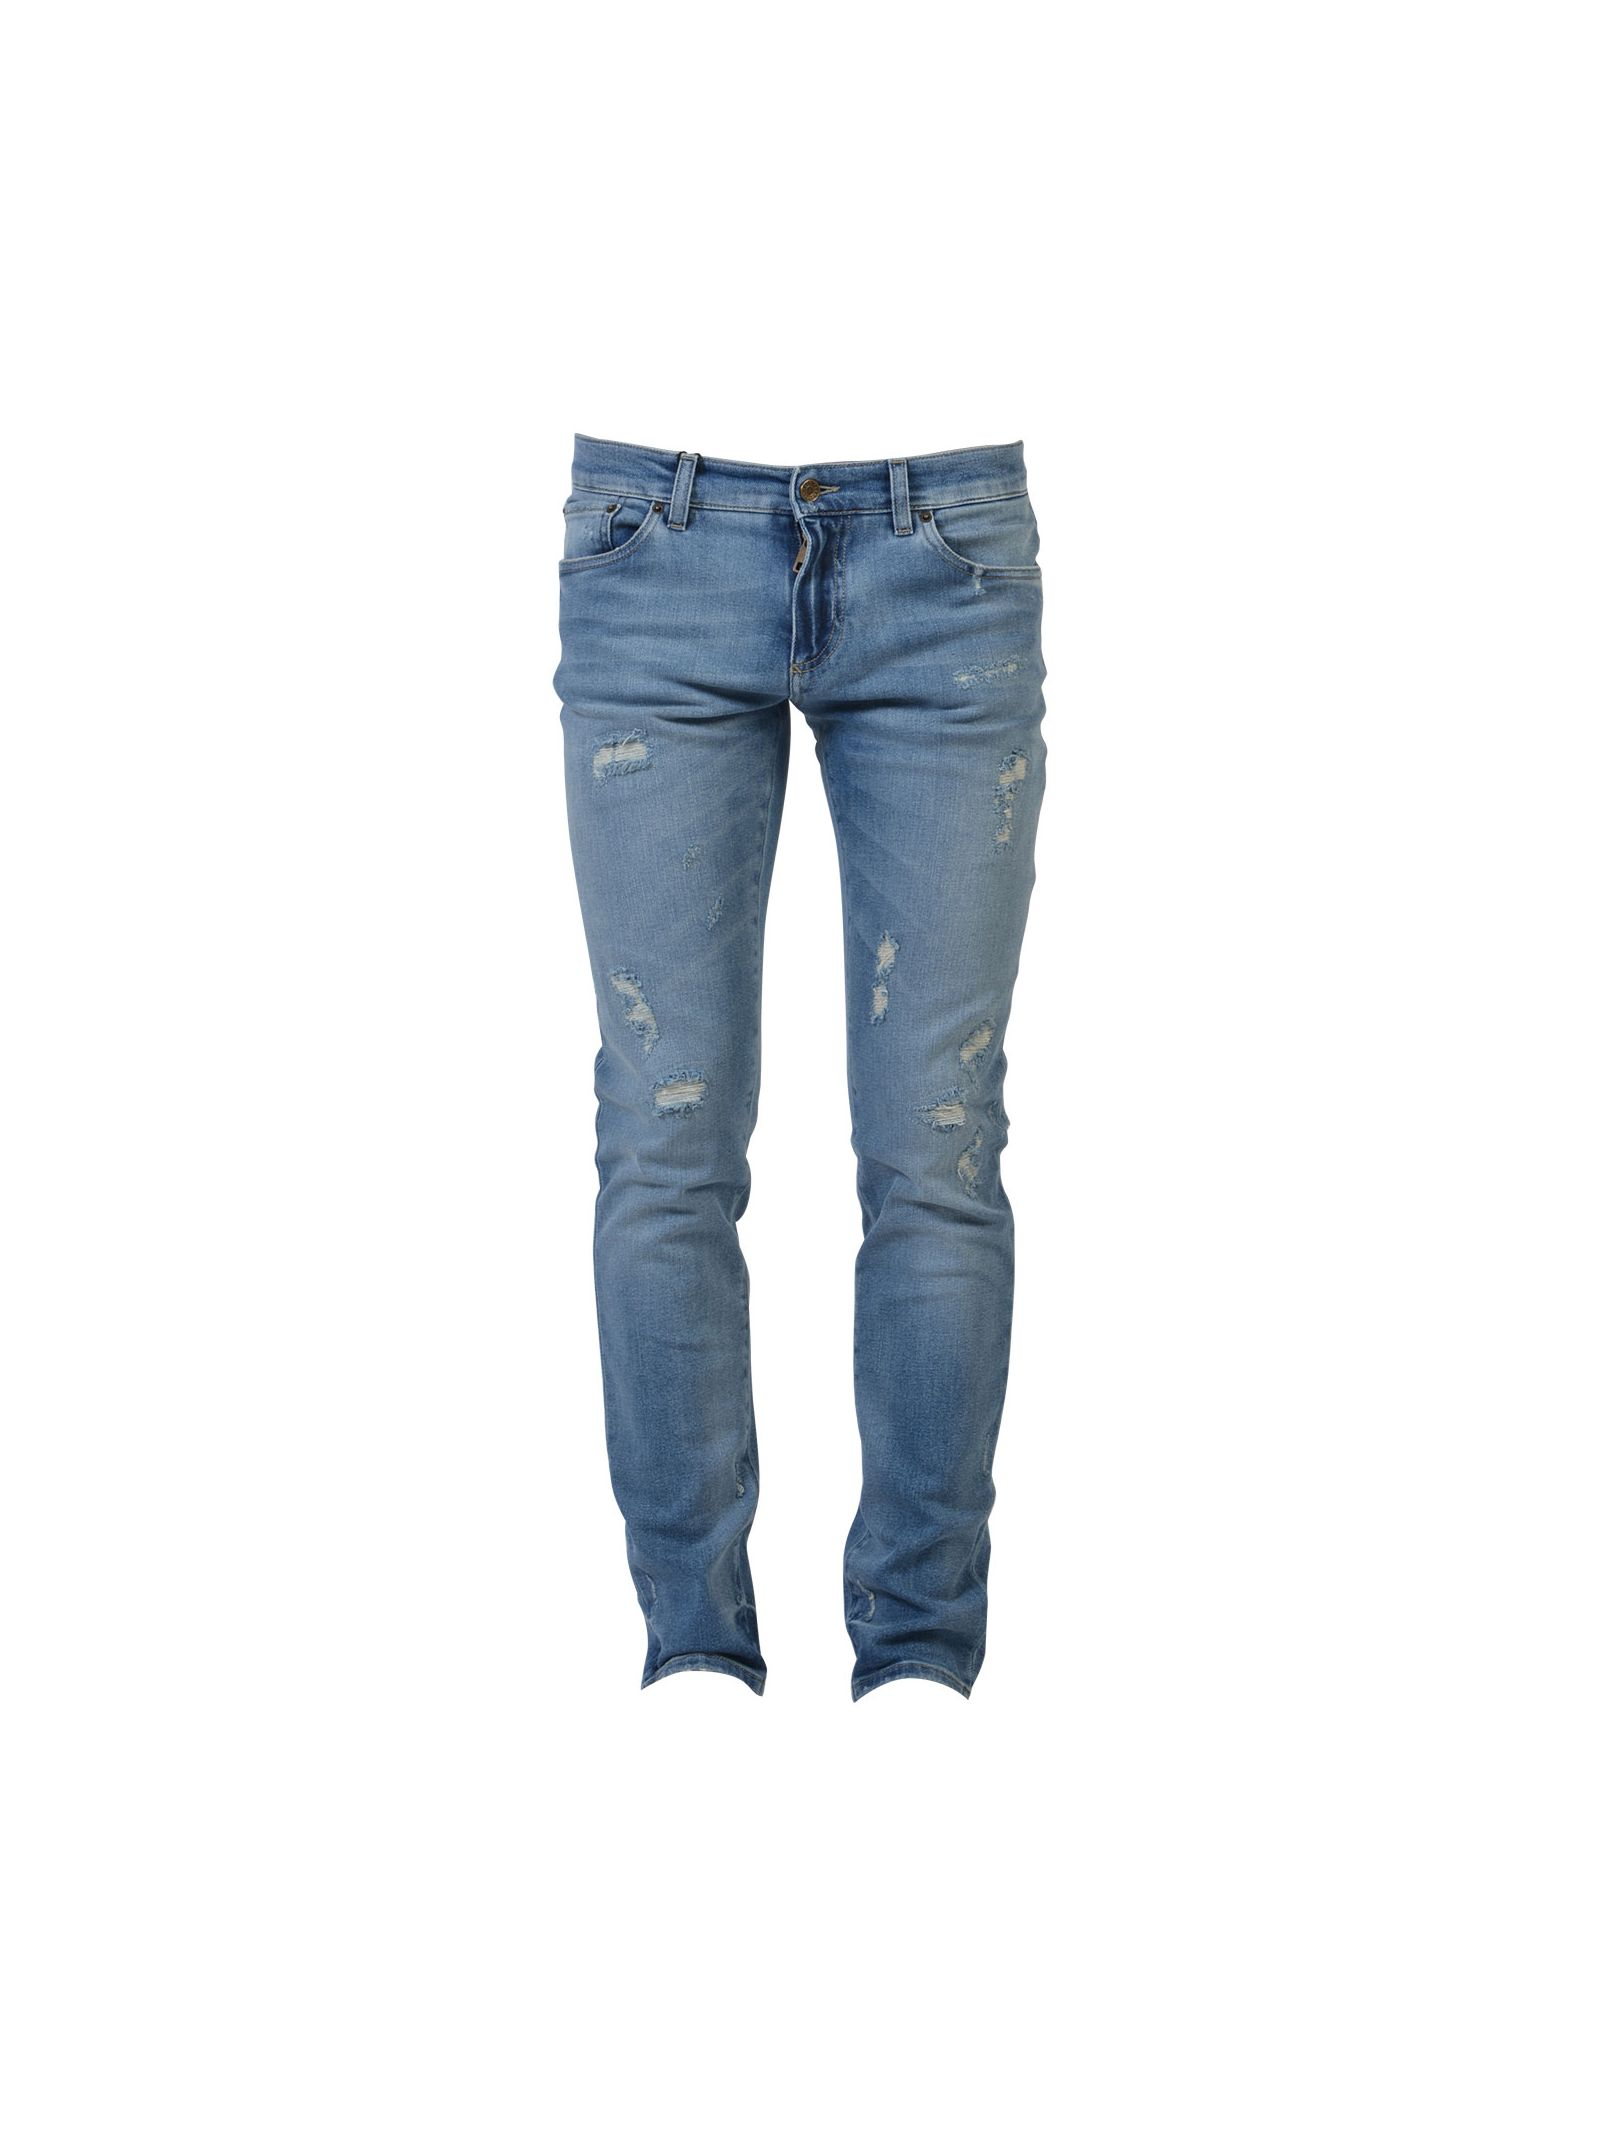 Dolce & Gabbana Light Blue Stretch Cotton Distressed Jeans